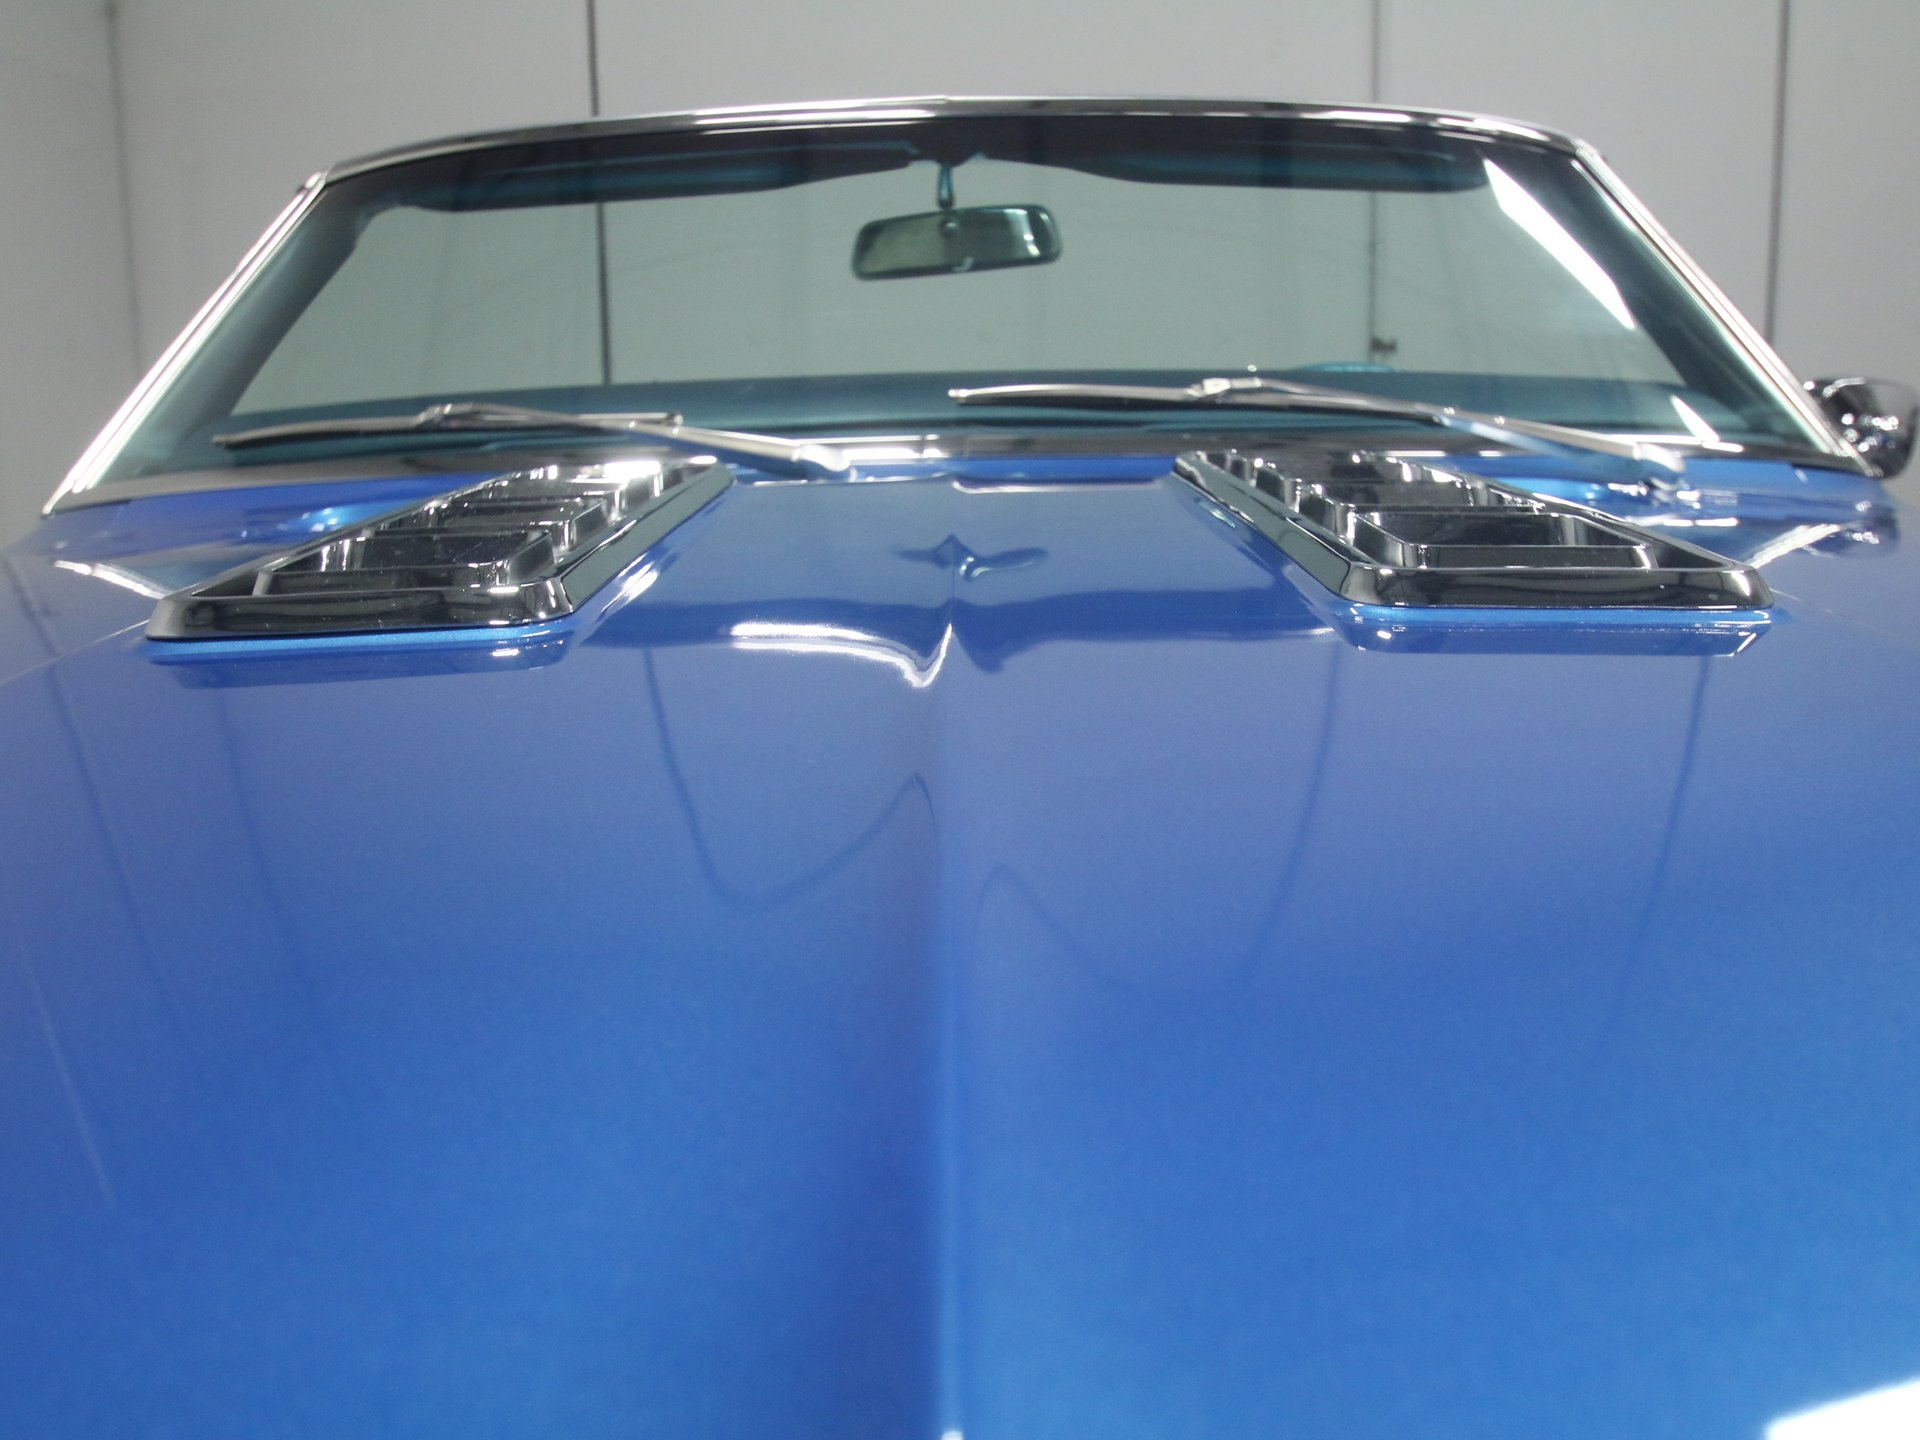 1968 Chevrolet Camaro Streetside Classics The Nations Trusted Blue View 360